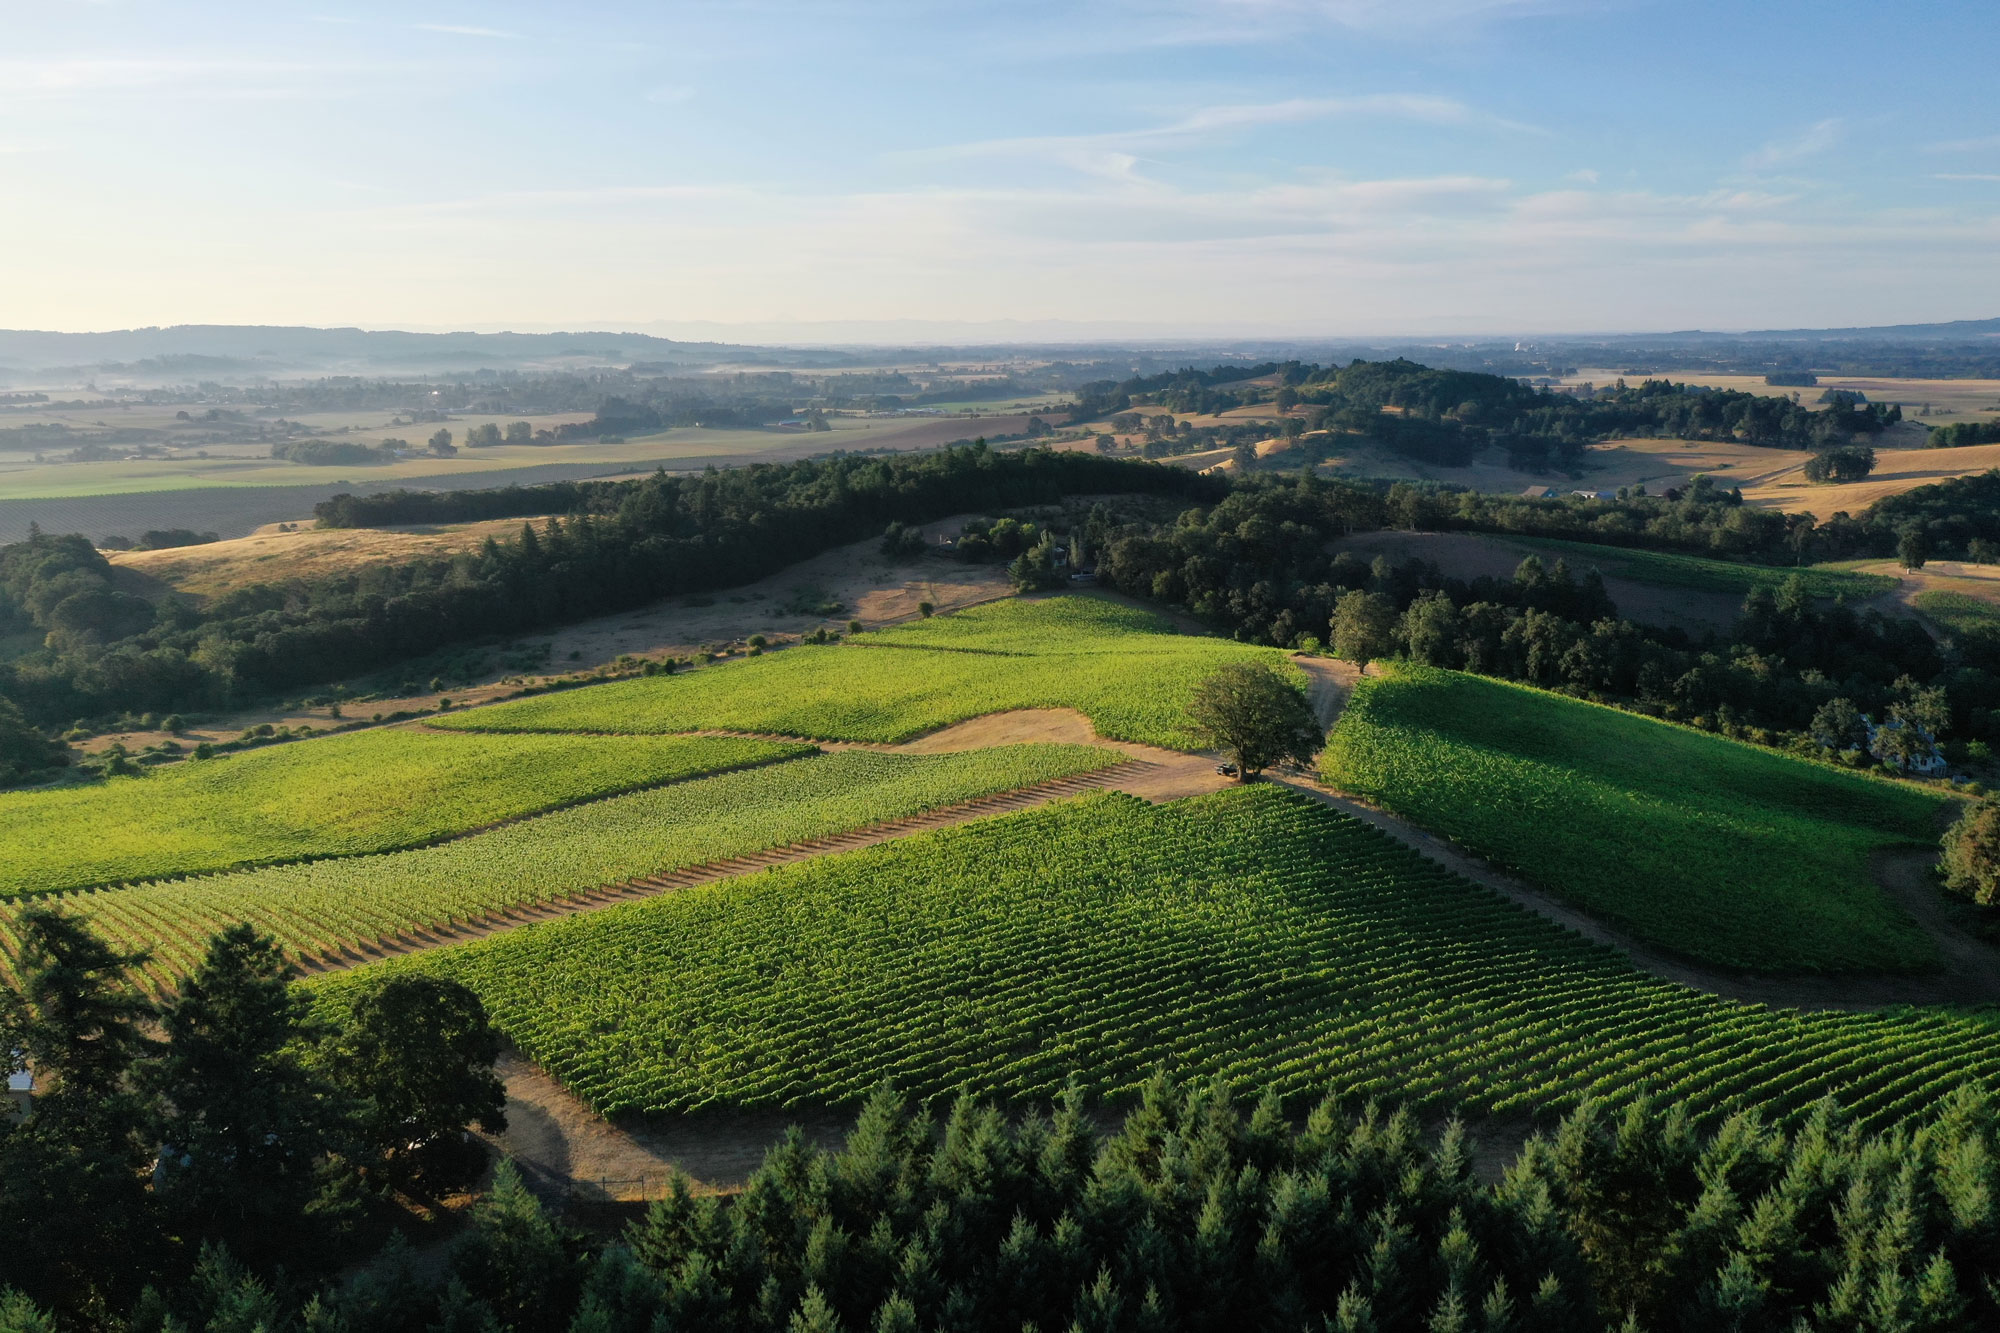 Yamhill-Carlton vineyard from the air